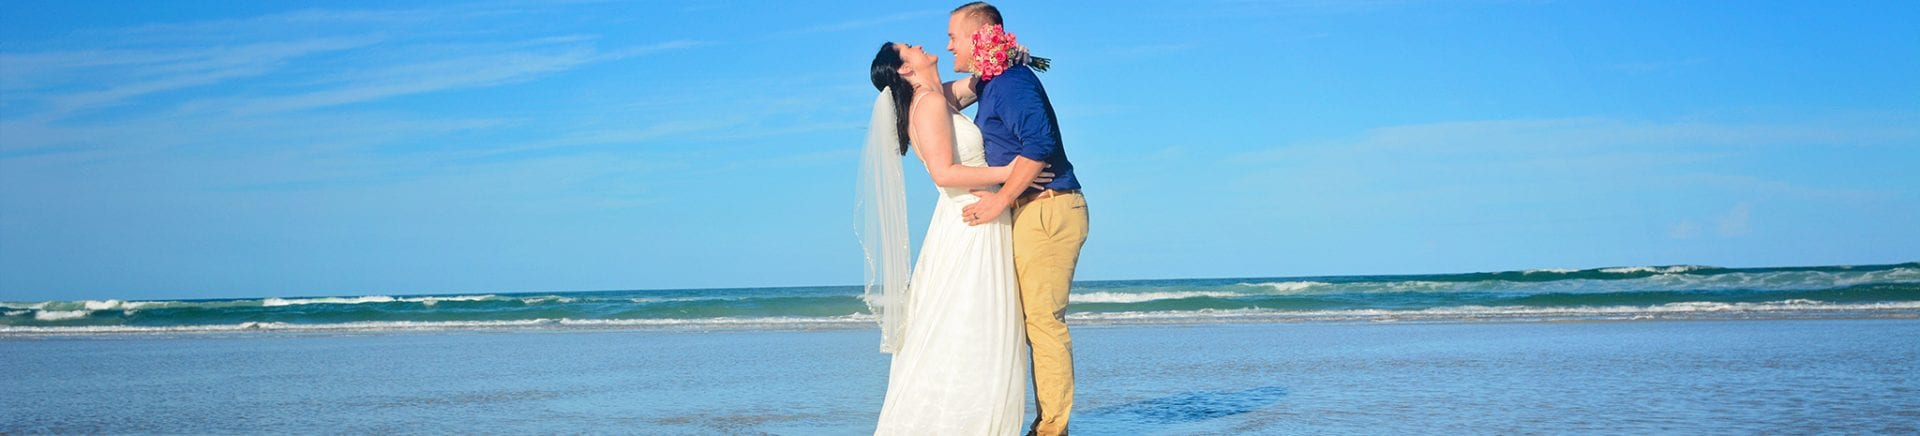 Couple kissing after beach wedding on sand